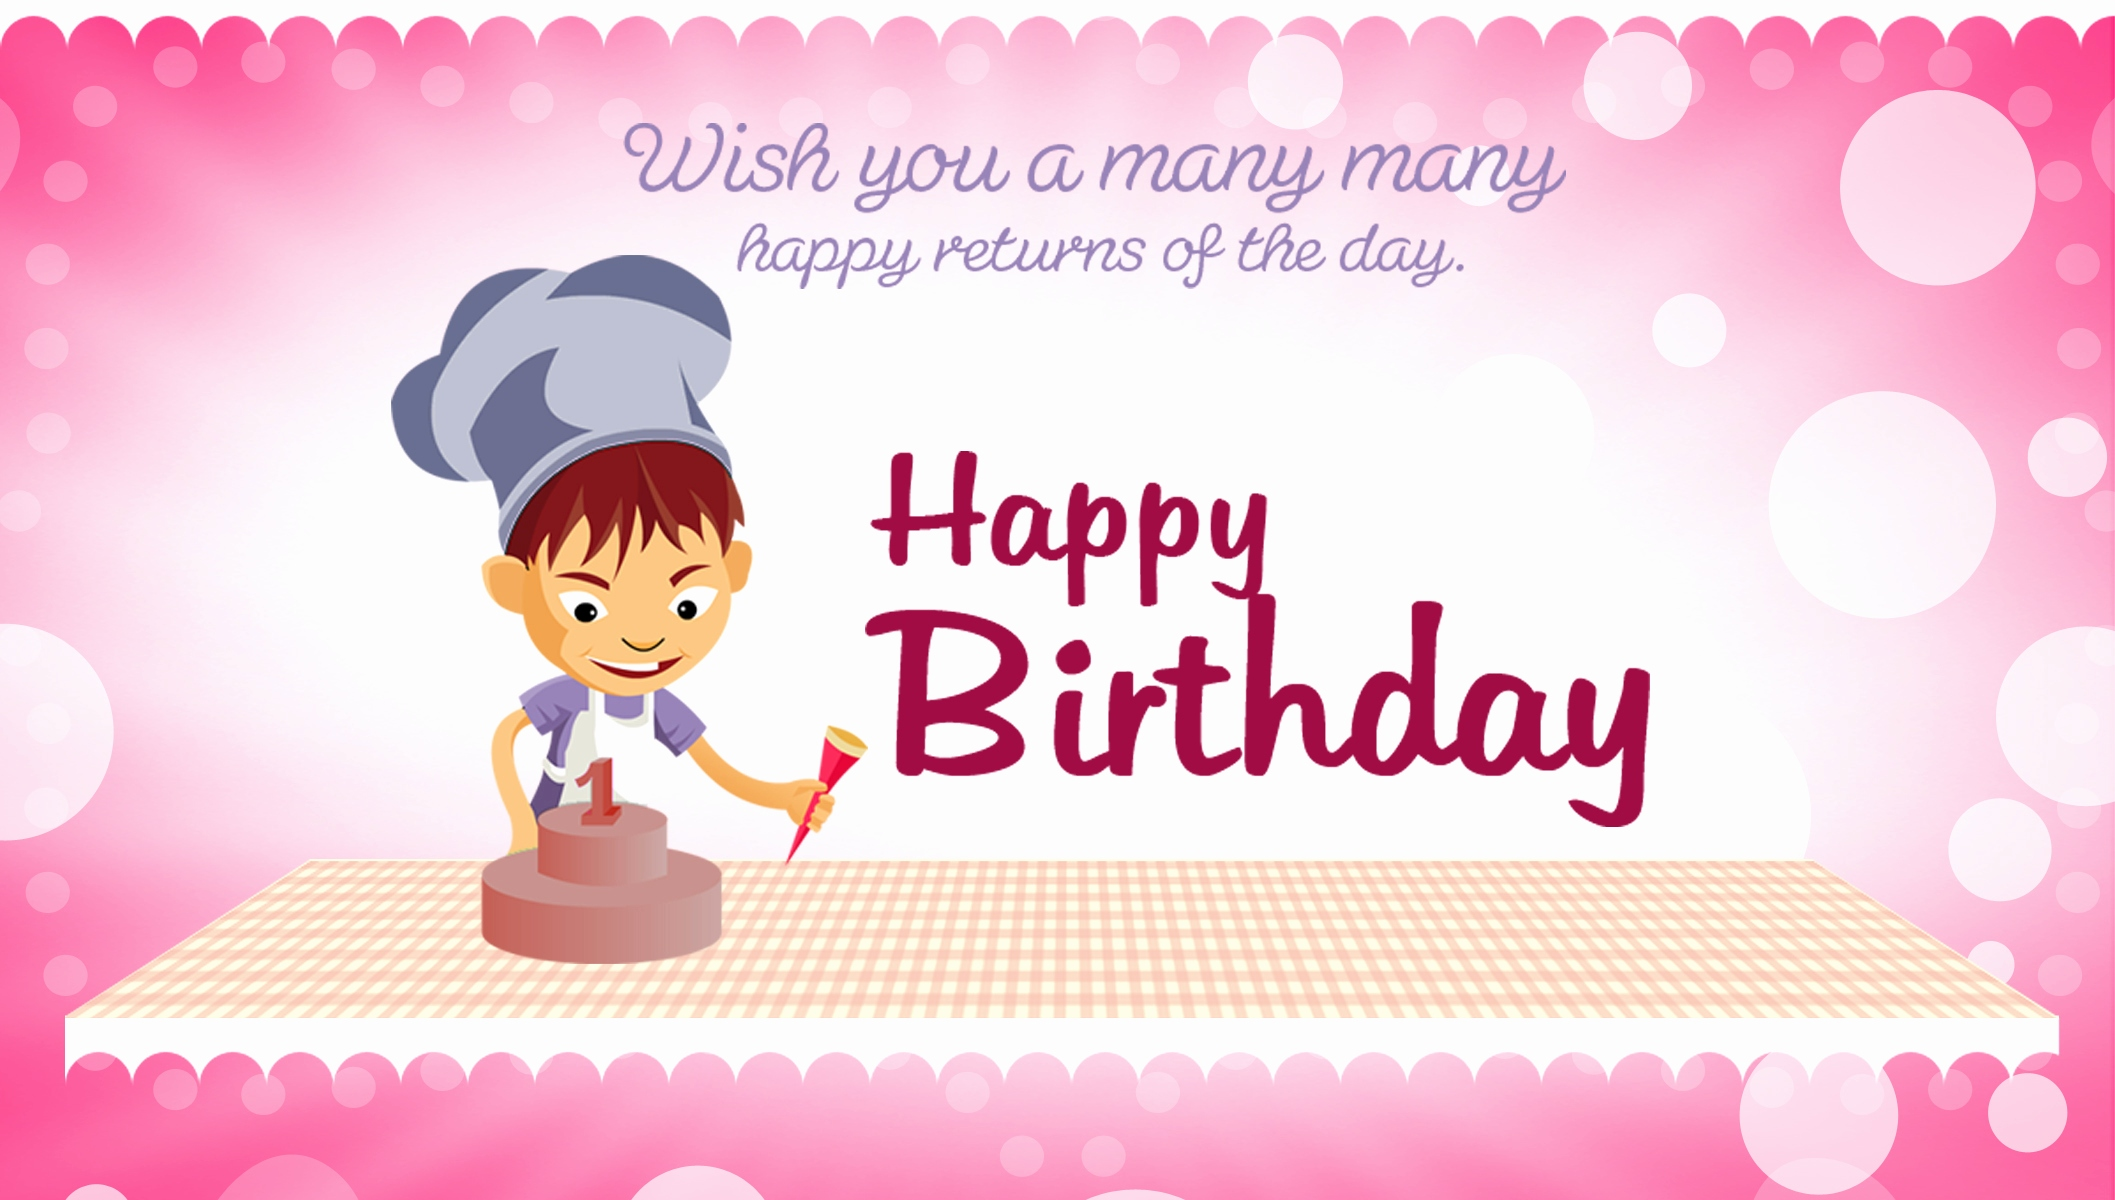 birthday card message for 3 year old boy ; birthday-card-message-for-3-year-old-boy-inspirational-xc-zx-3-of-birthday-card-message-for-3-year-old-boy